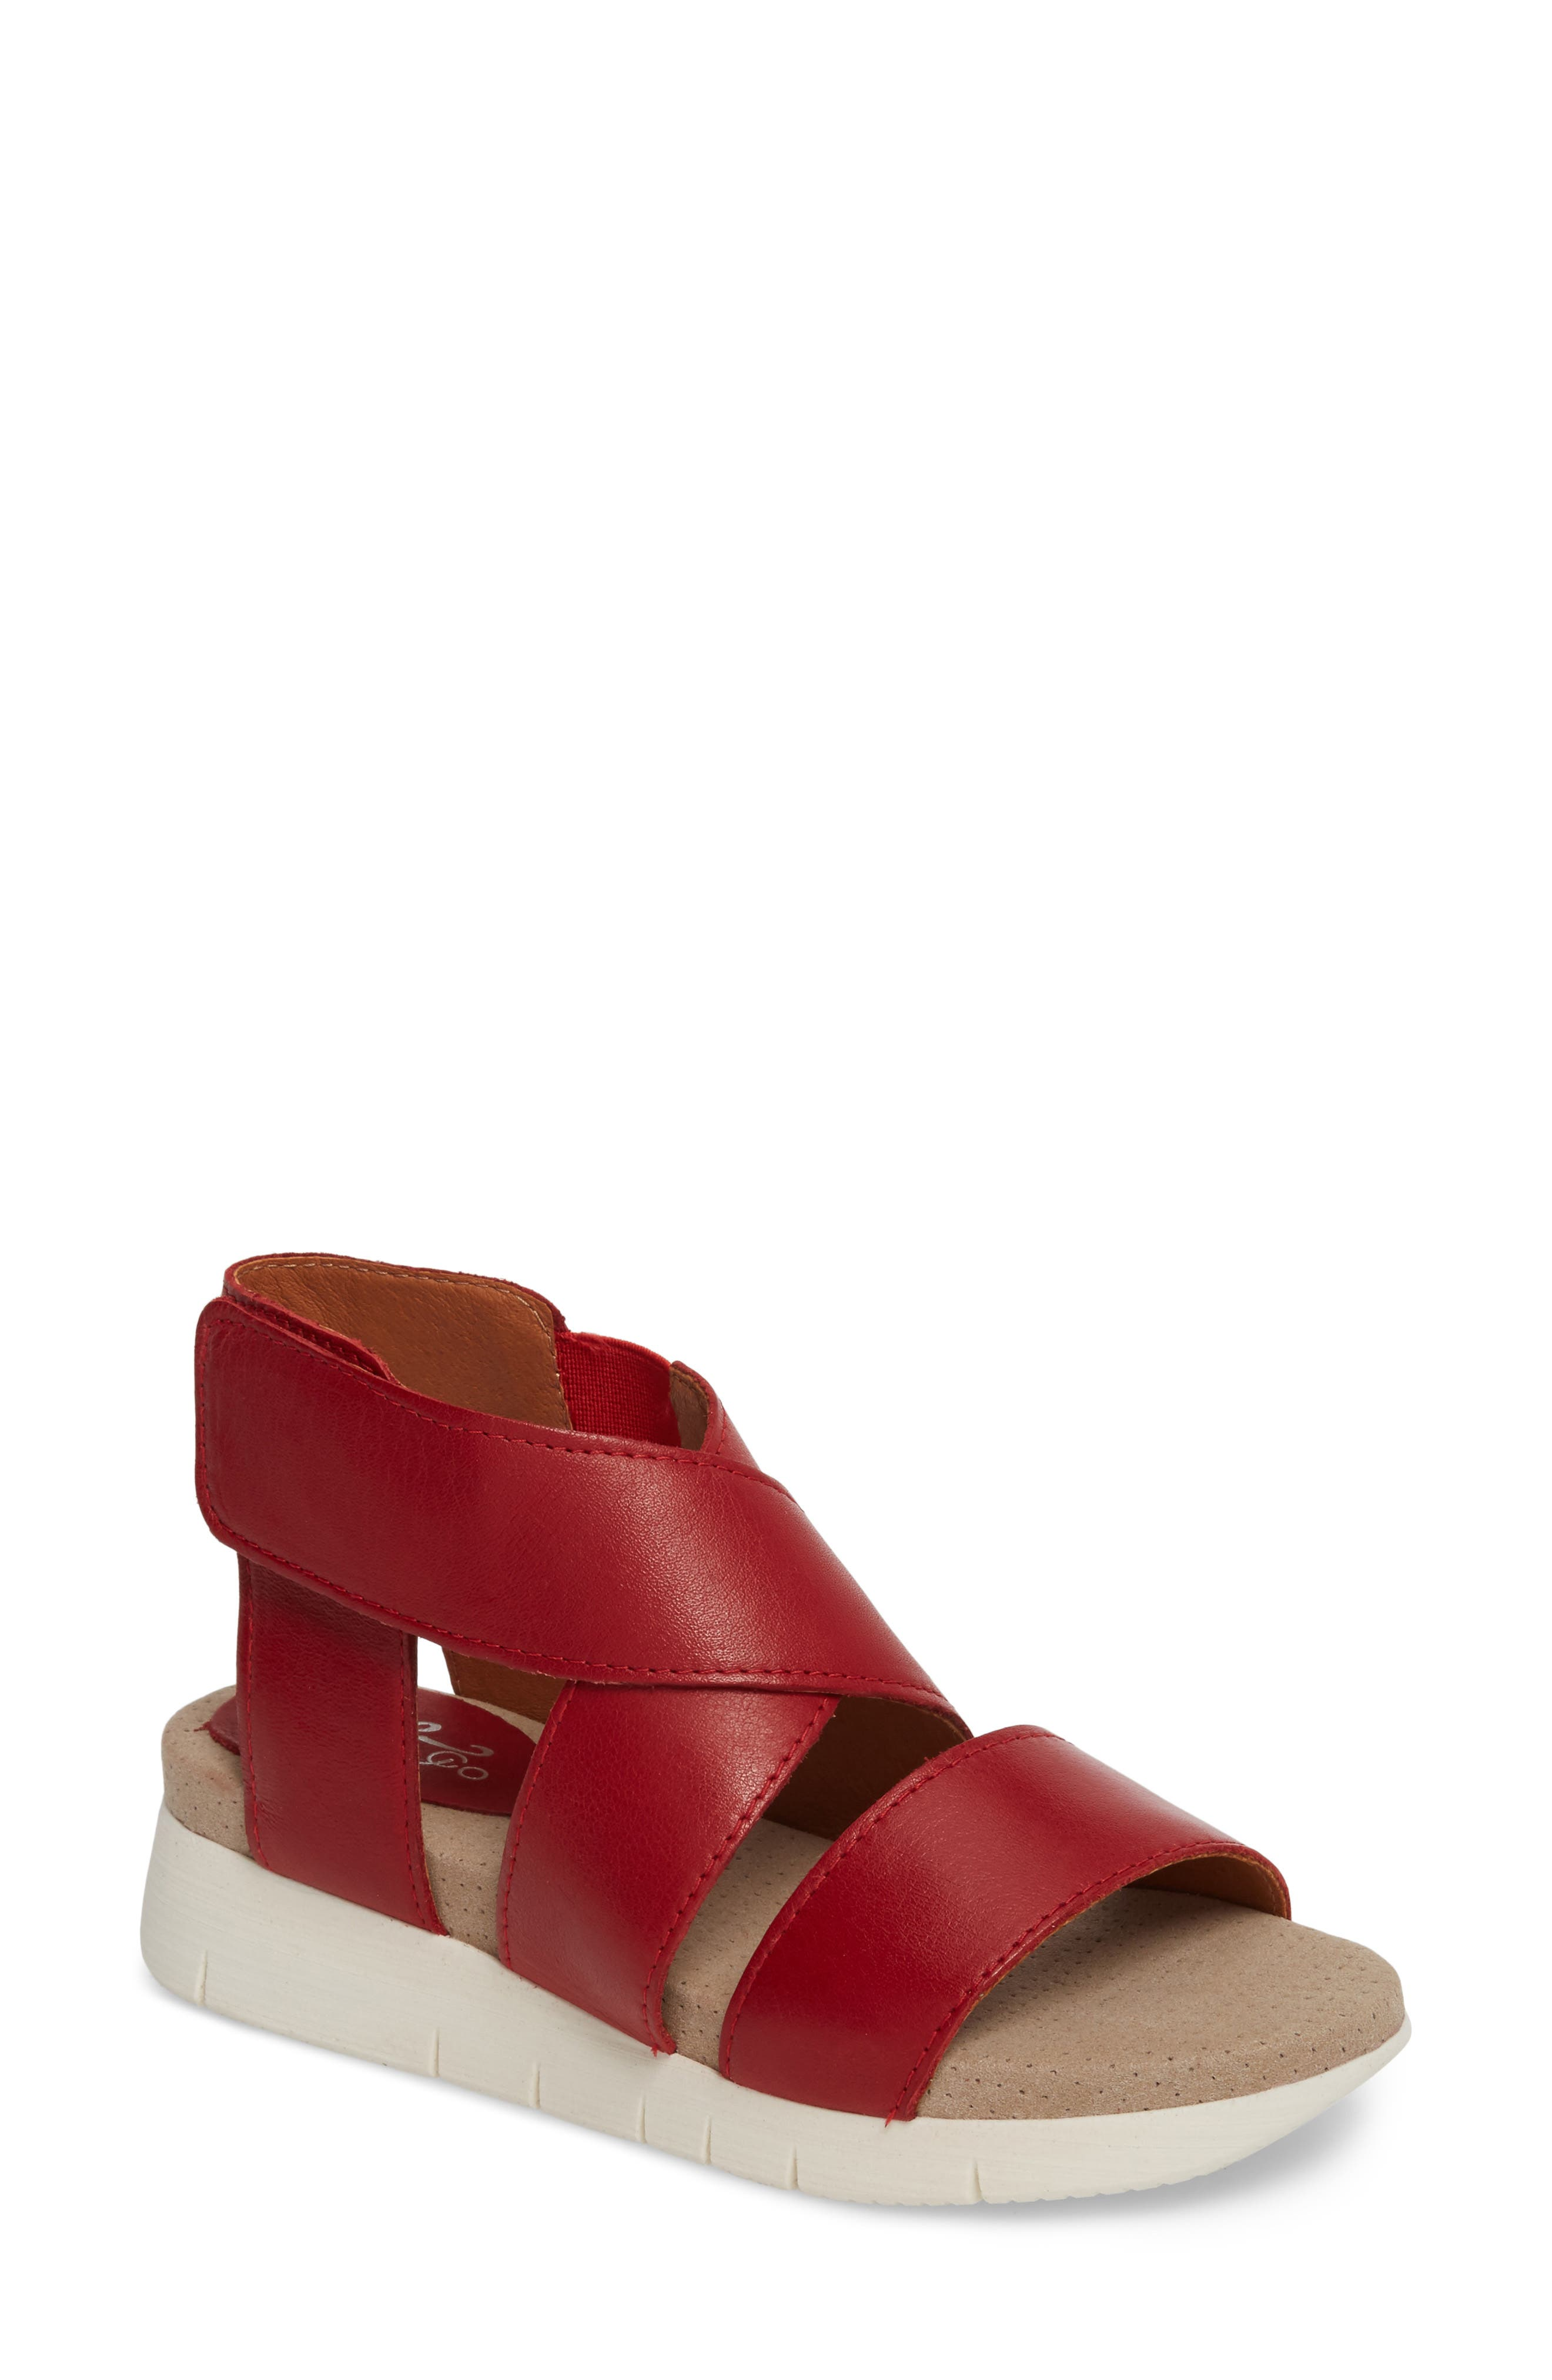 Bos. & Co. Piper Wedge Sandal - Red